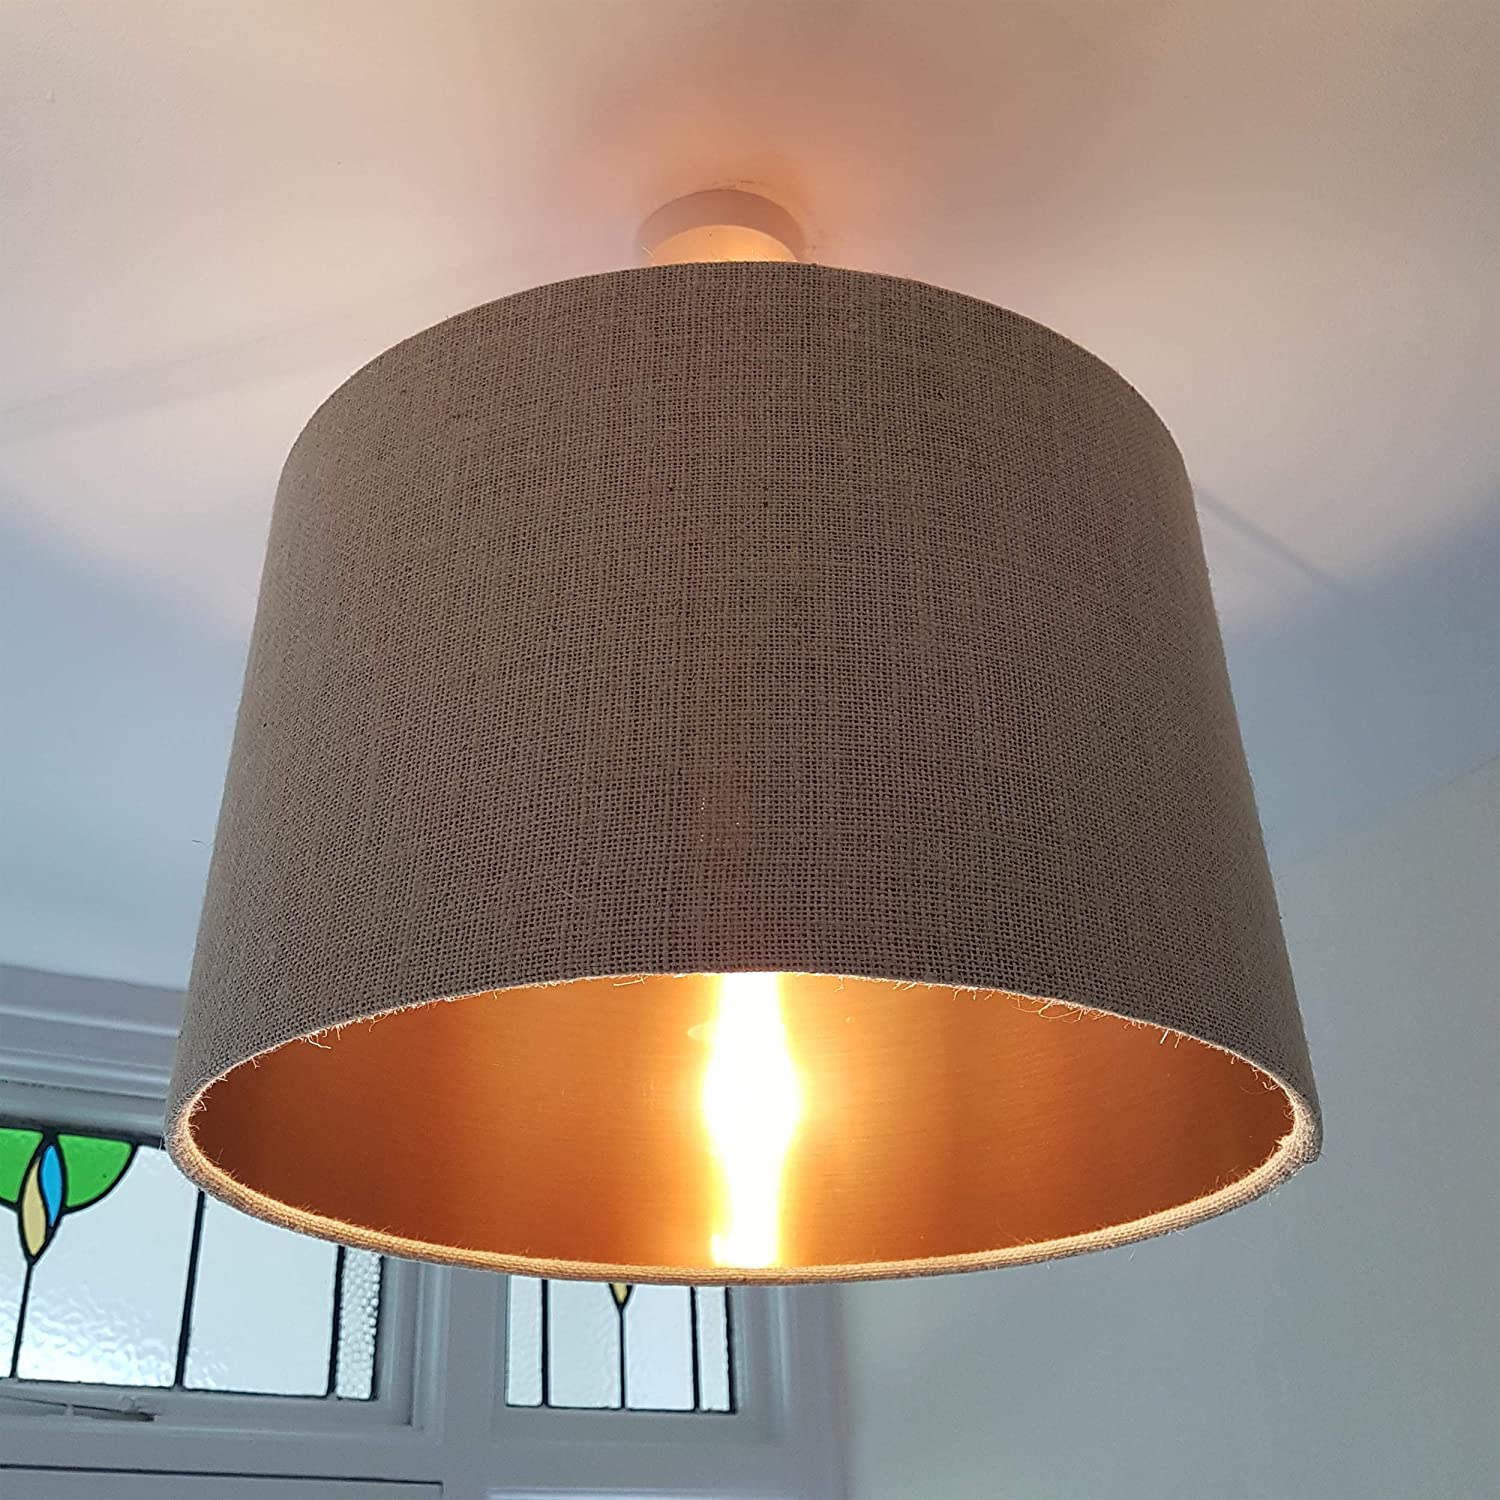 Natural Cream Hessian Lampshade with Metallic Copper Lining